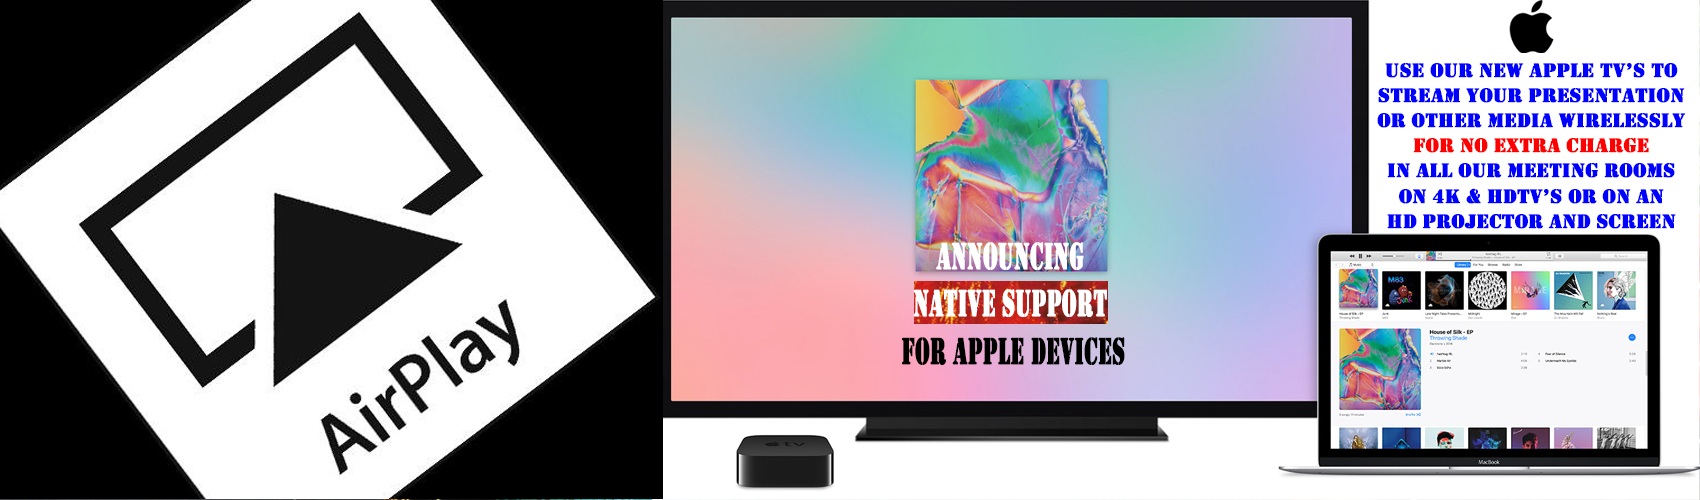 Apple TV Announcement_edited-1